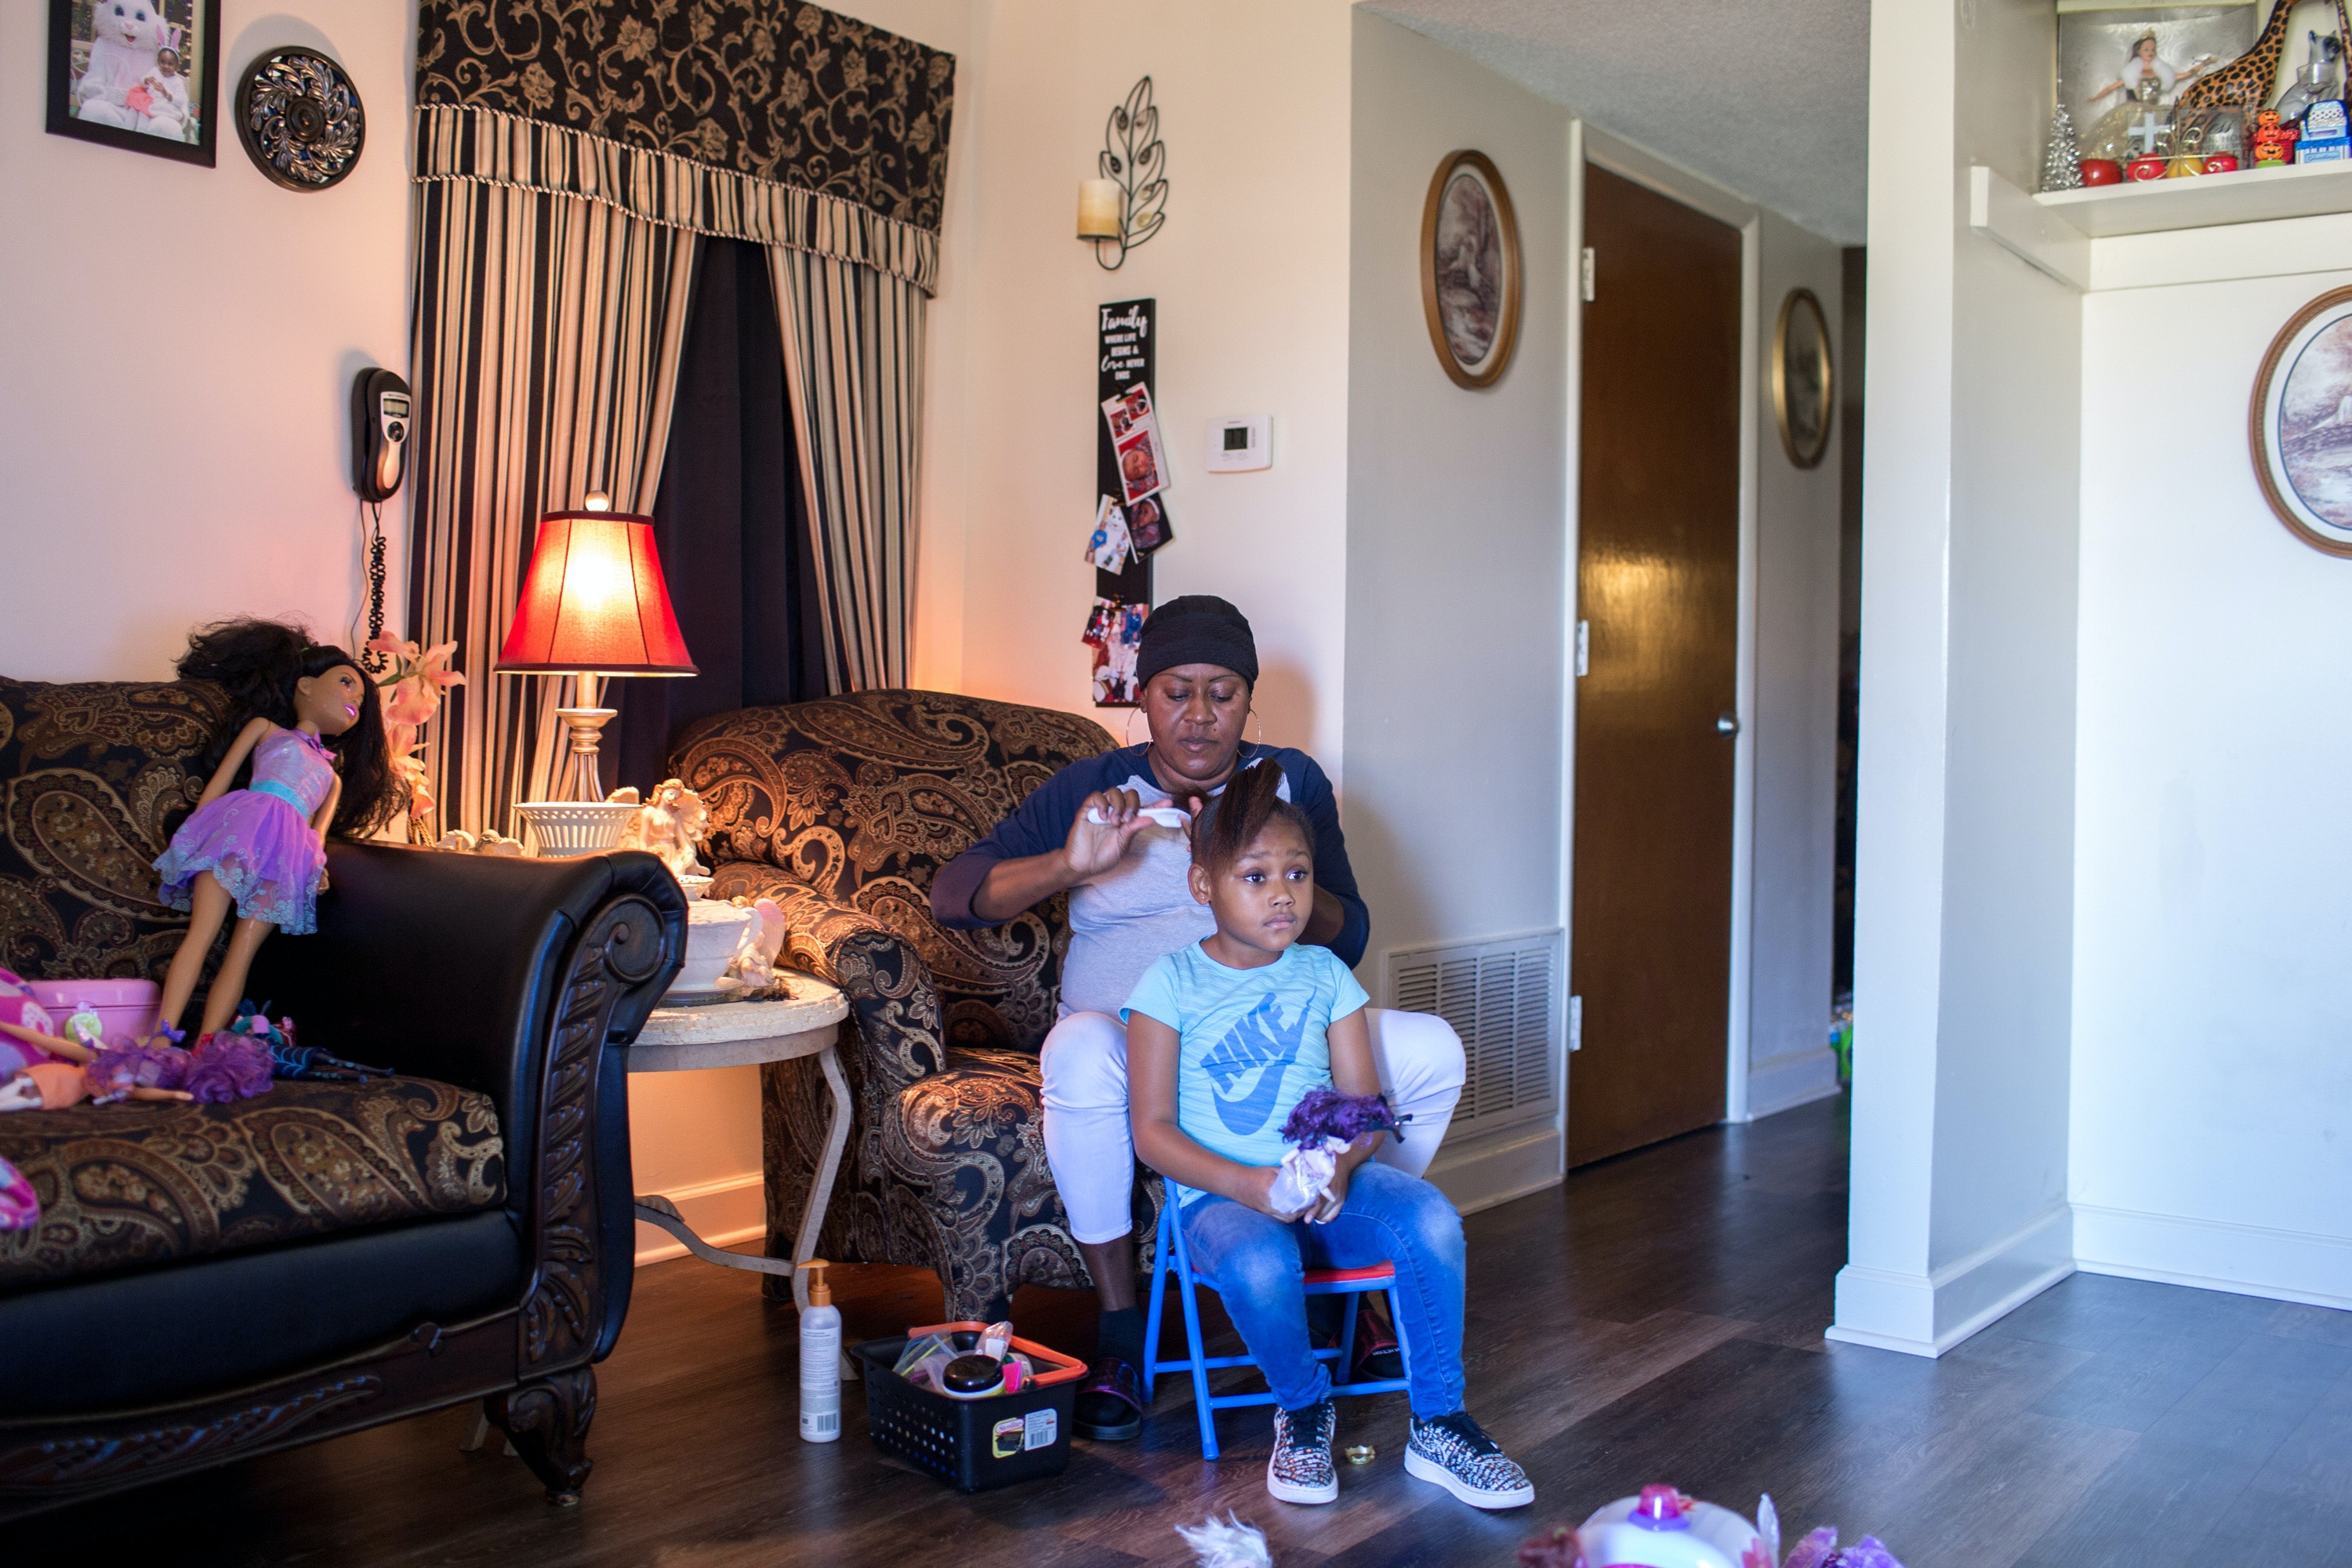 October 25, 2018. Lumberton NC. Alicia Huggins and her daughter Na-Vaya at home in Lumberton NC. Alicia and her family were flooded and ended up in emergency shelters during both storms. Alicia, who is pregnant and battling thyroid cancer, said after a week in the shelter this time she decided she would rather live in her damaged home for the health and safety of her family because conditions were so bad.